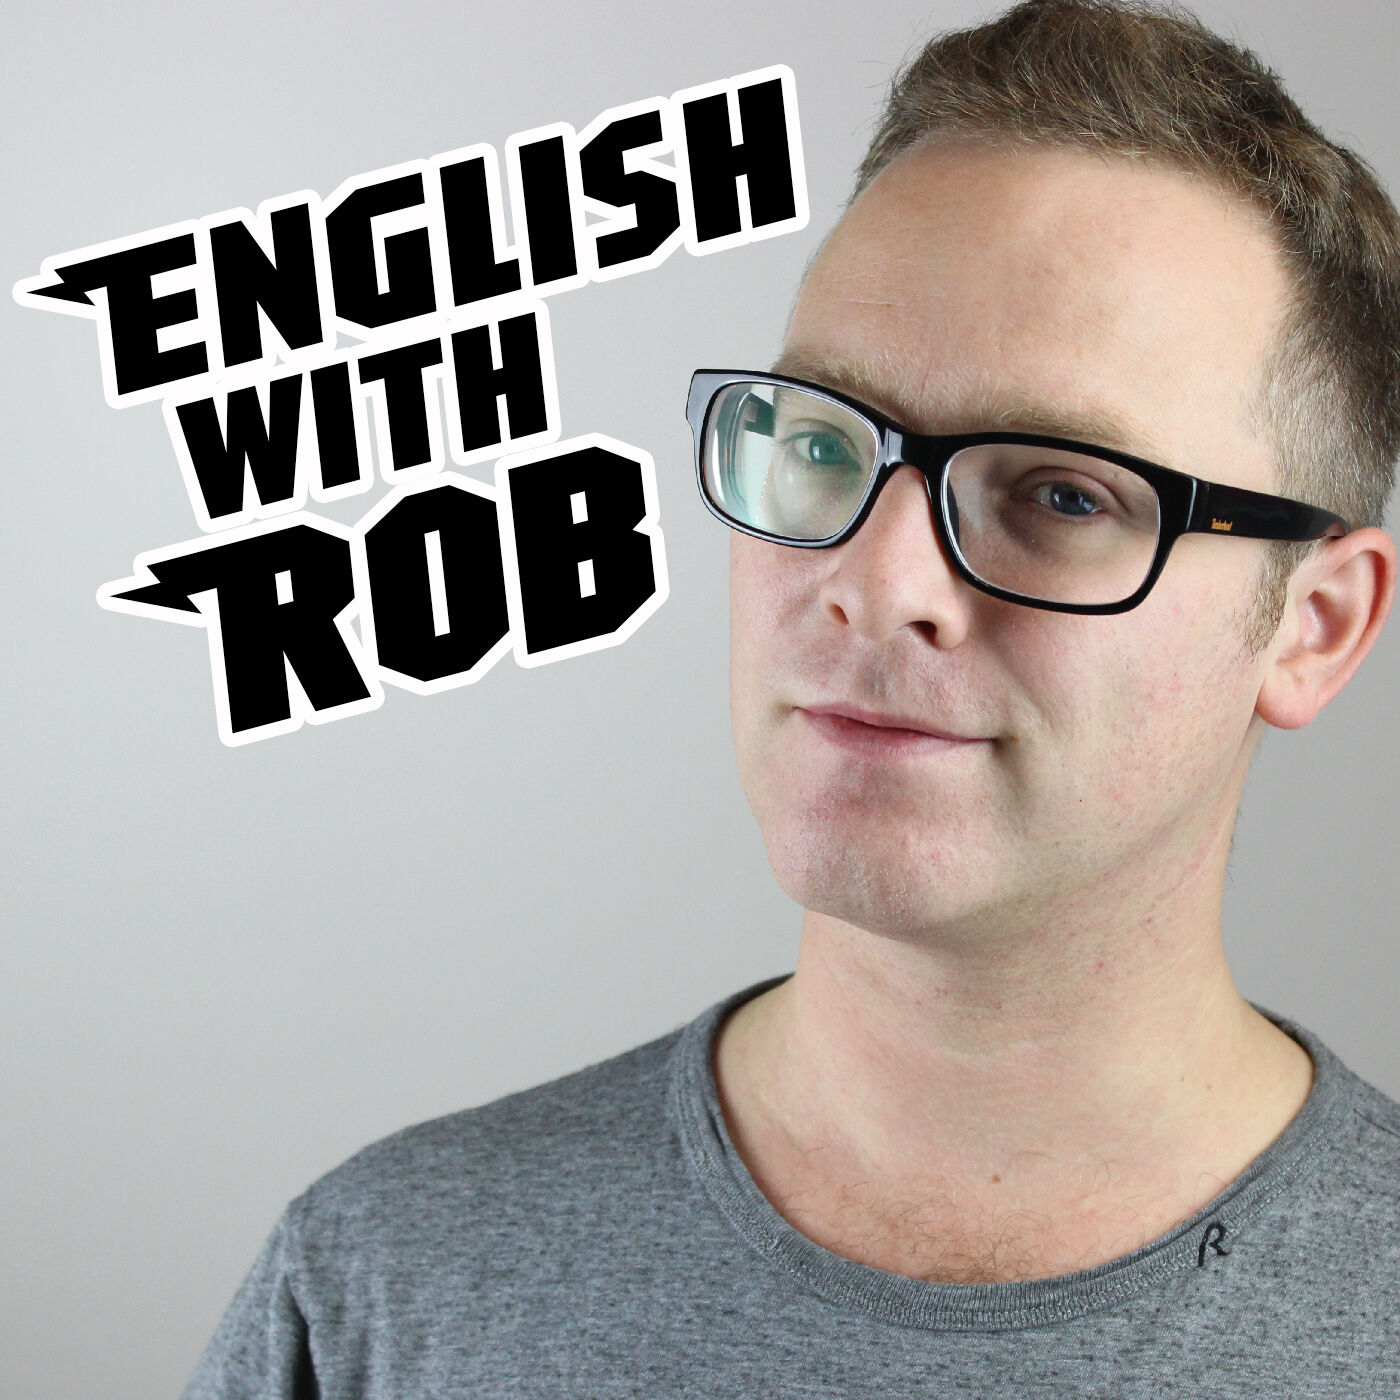 English with Rob podcast show image